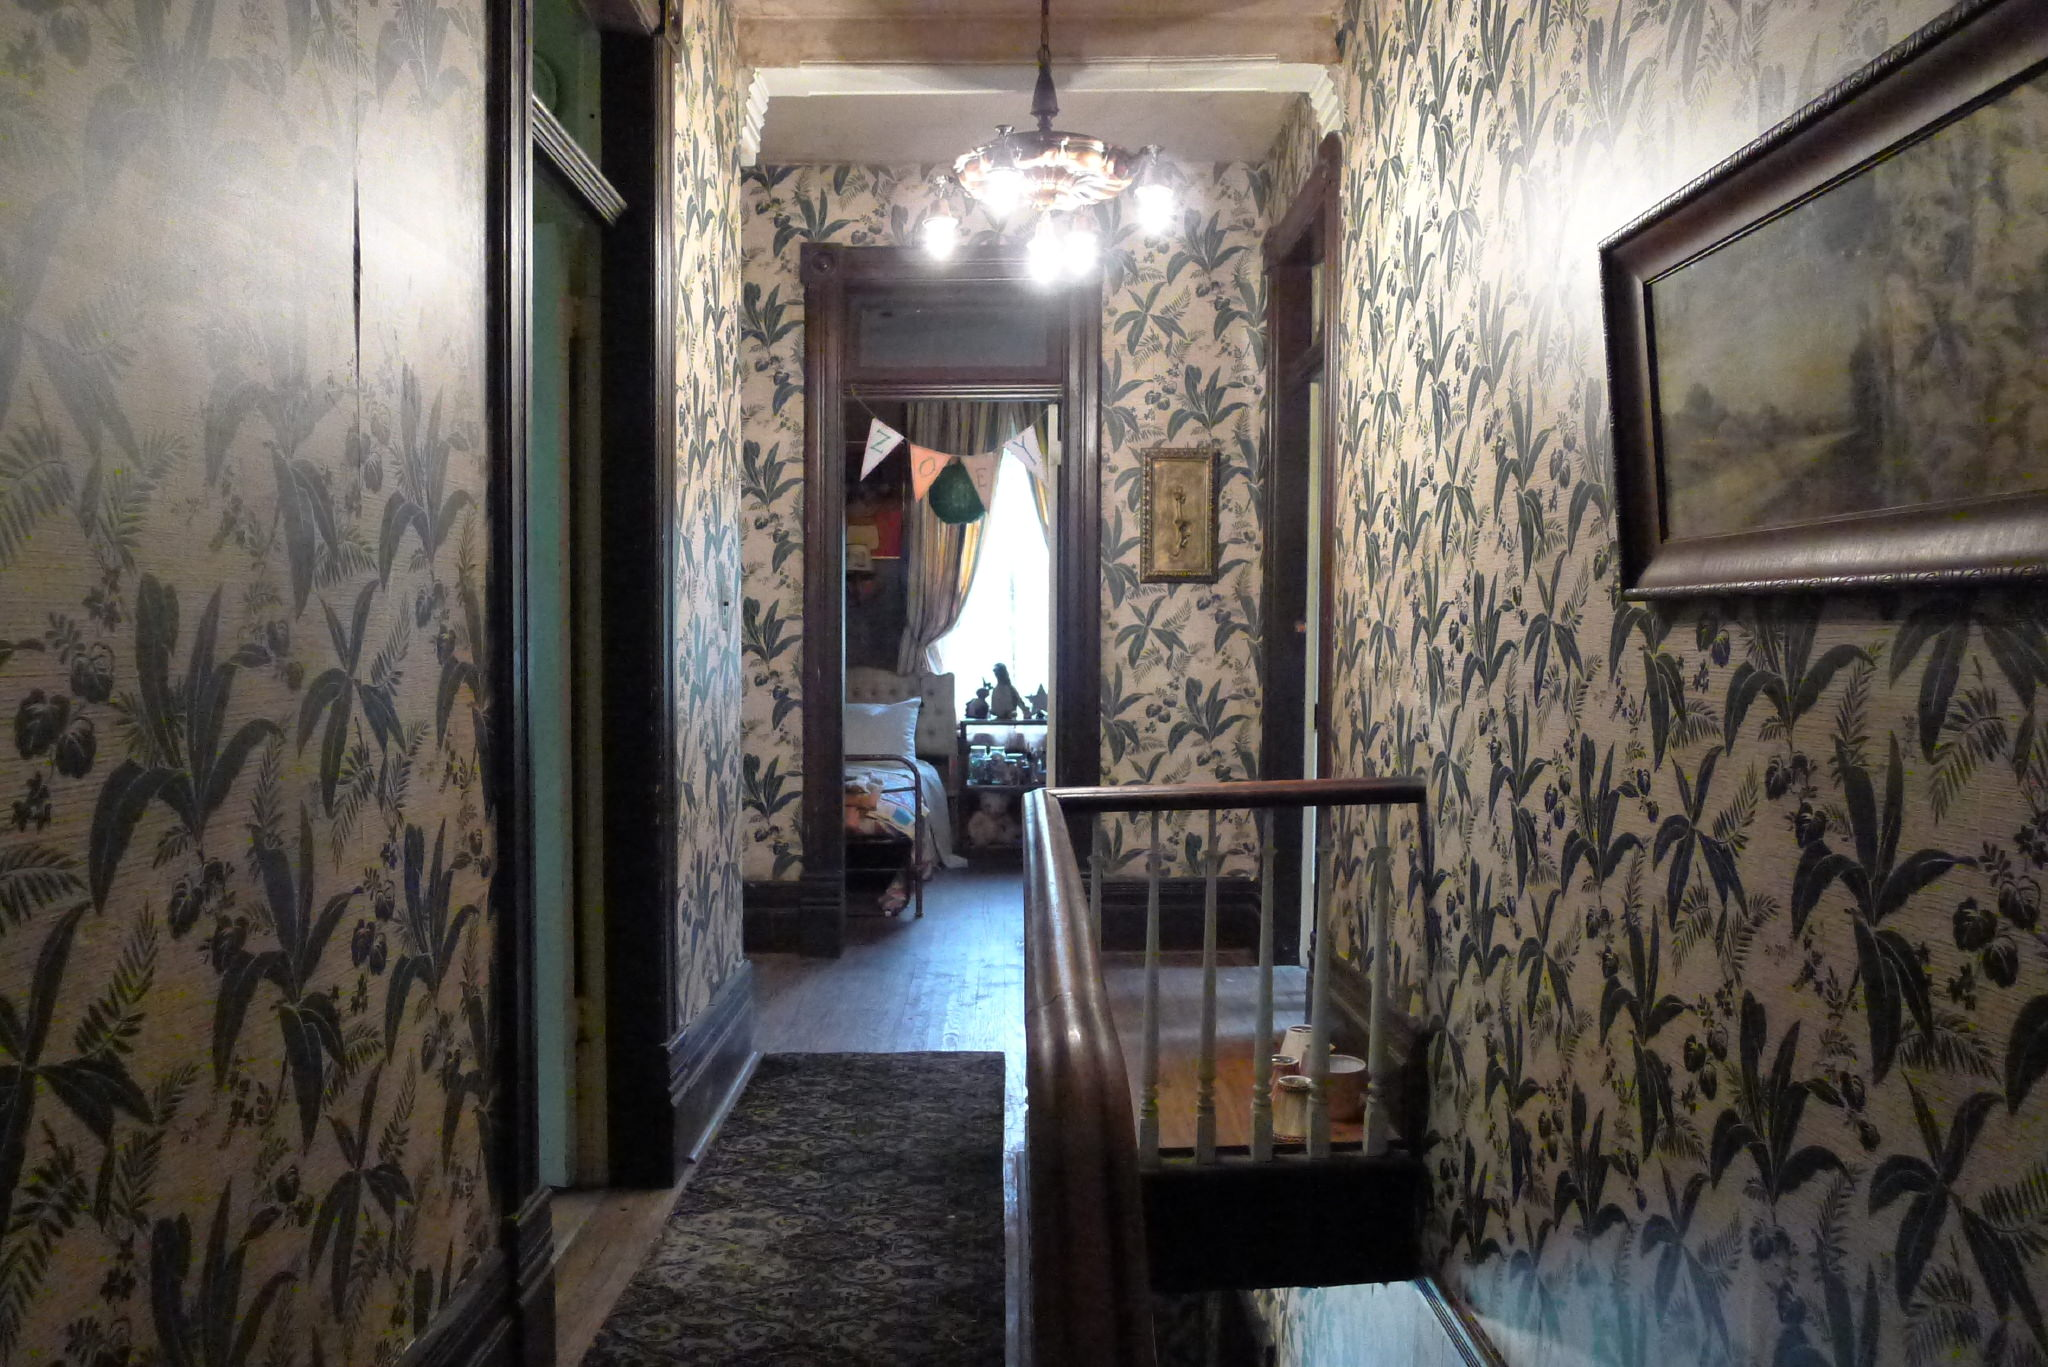 The weird and wonderful upstairs hallway in Zed's (Milo Manheim) Zombietown hovel.